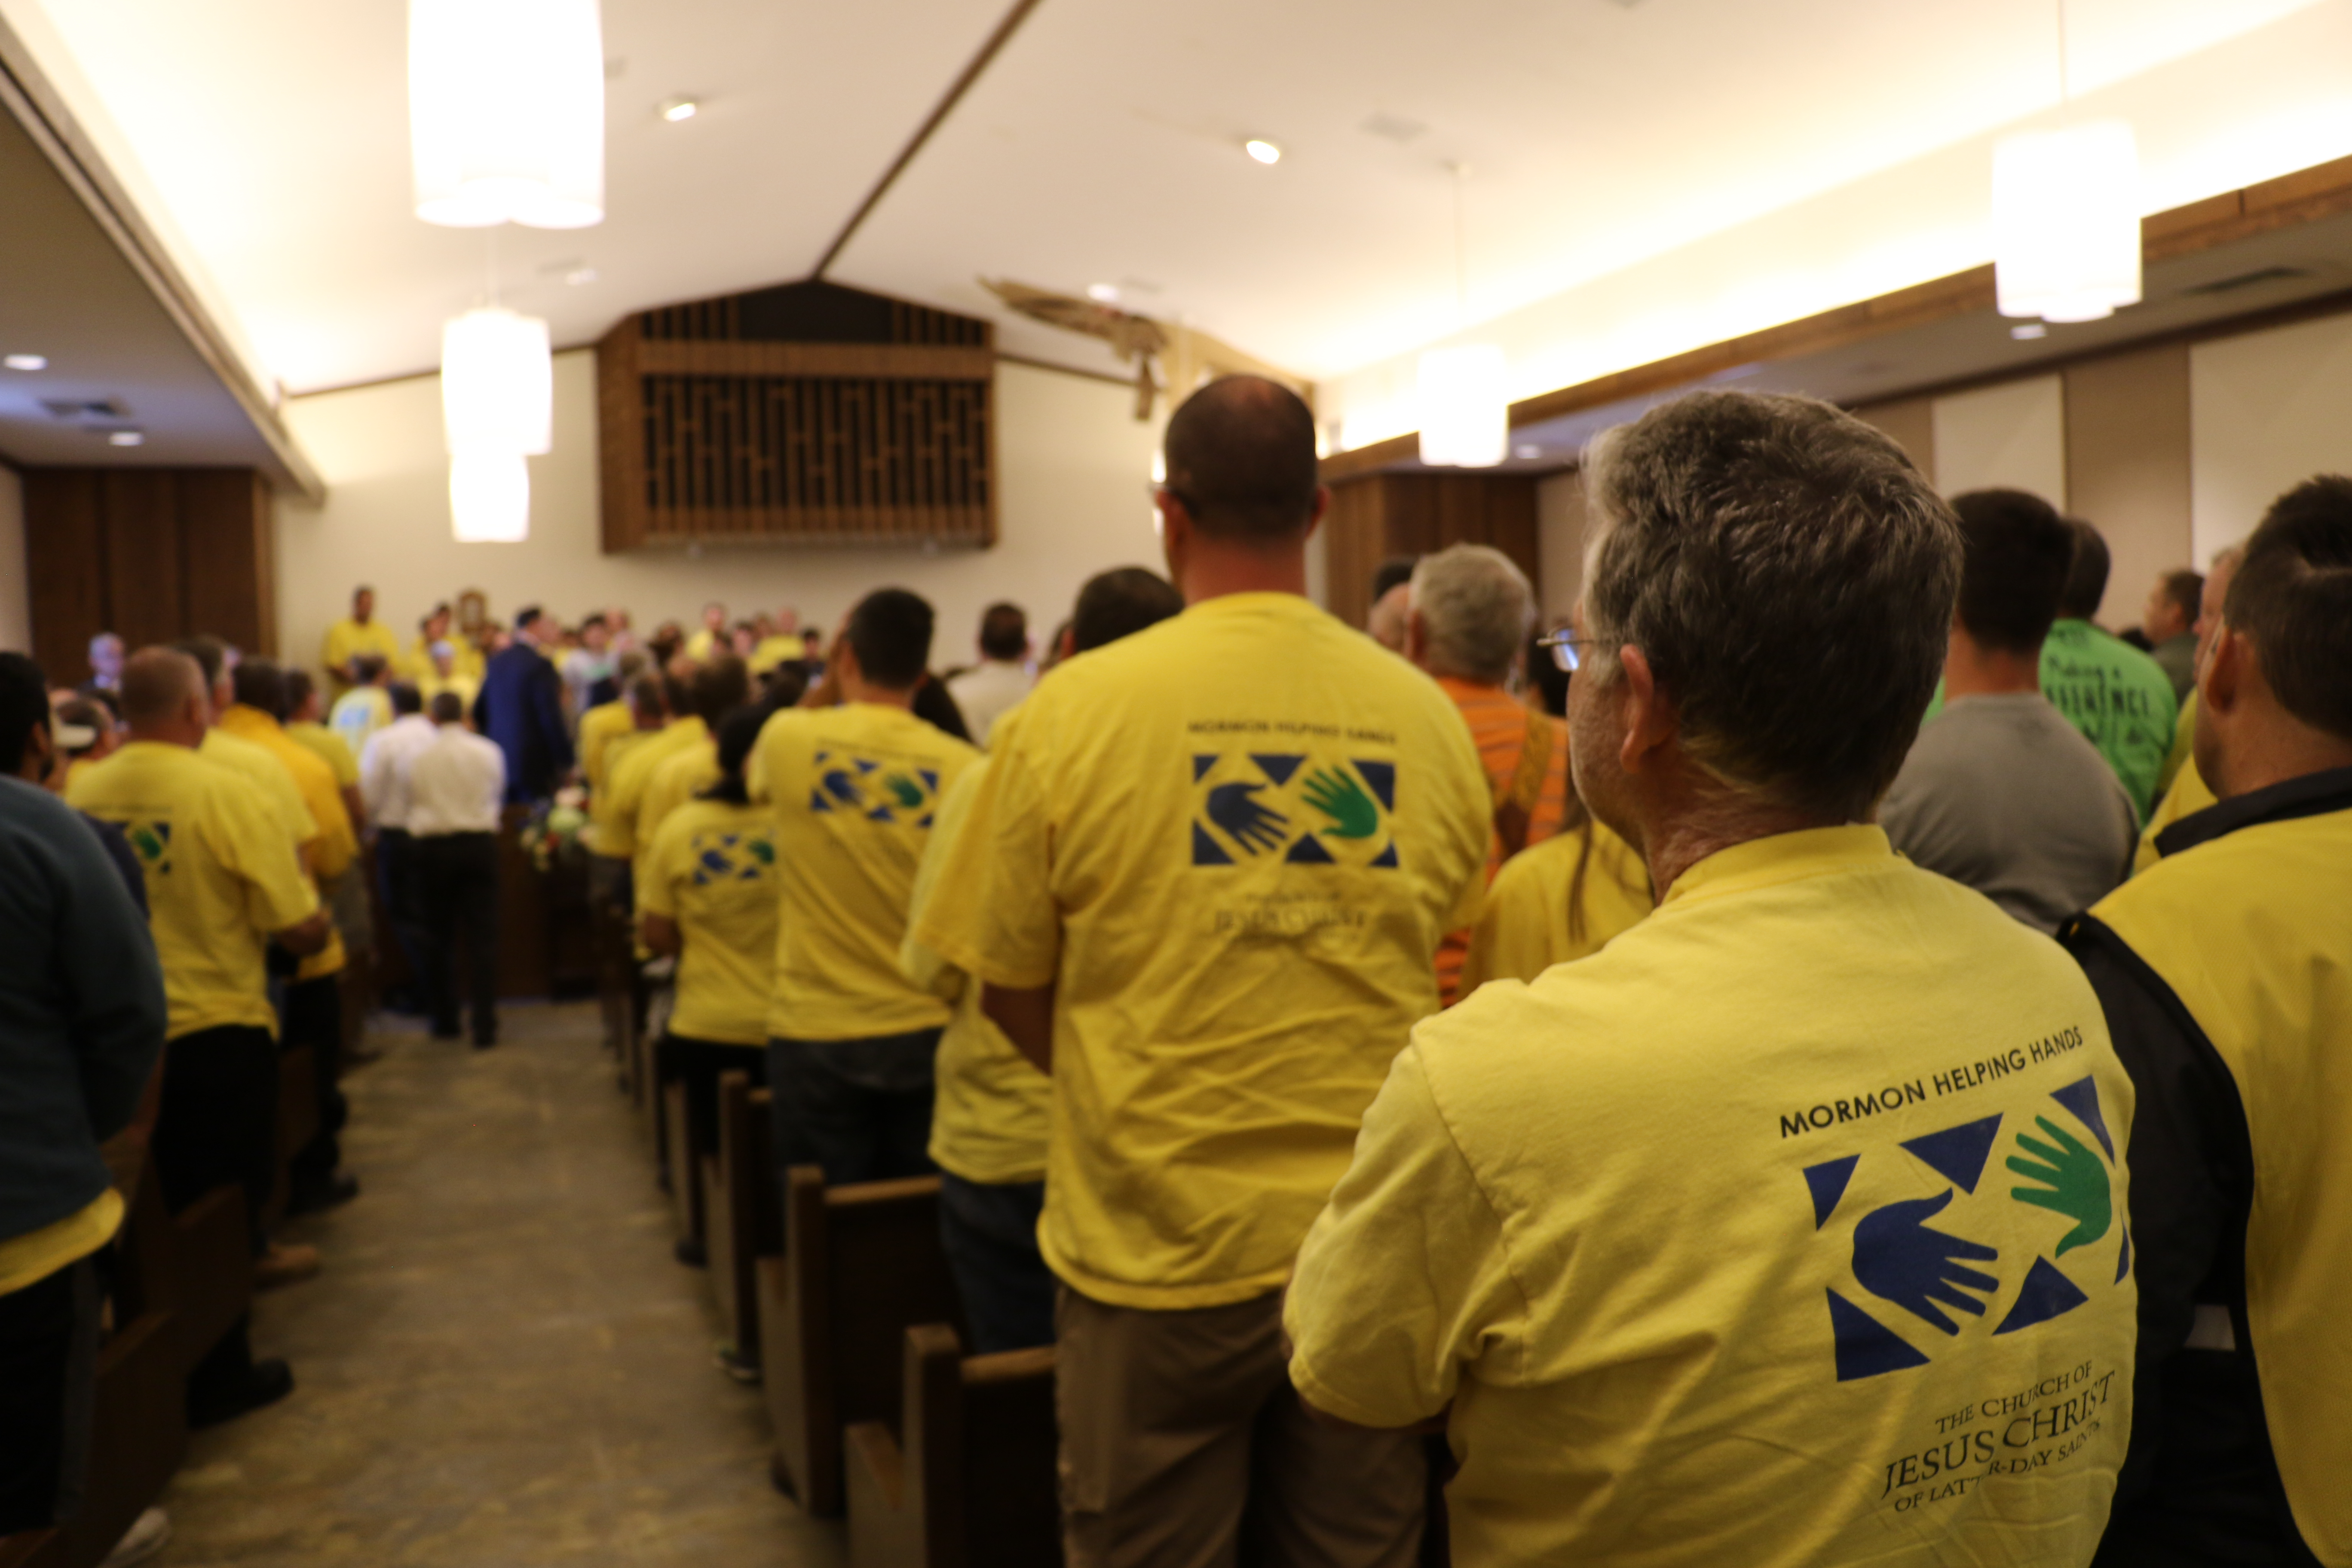 Yellow-clad Helping Hands volunteers come to their feet as President Dallin H. Oaks of The Church of Jesus Christ of Latter-day Saints and other visiting leaders arrive for early morning Sunday service in Panama City, Florida, on Oct. 21, 2018.